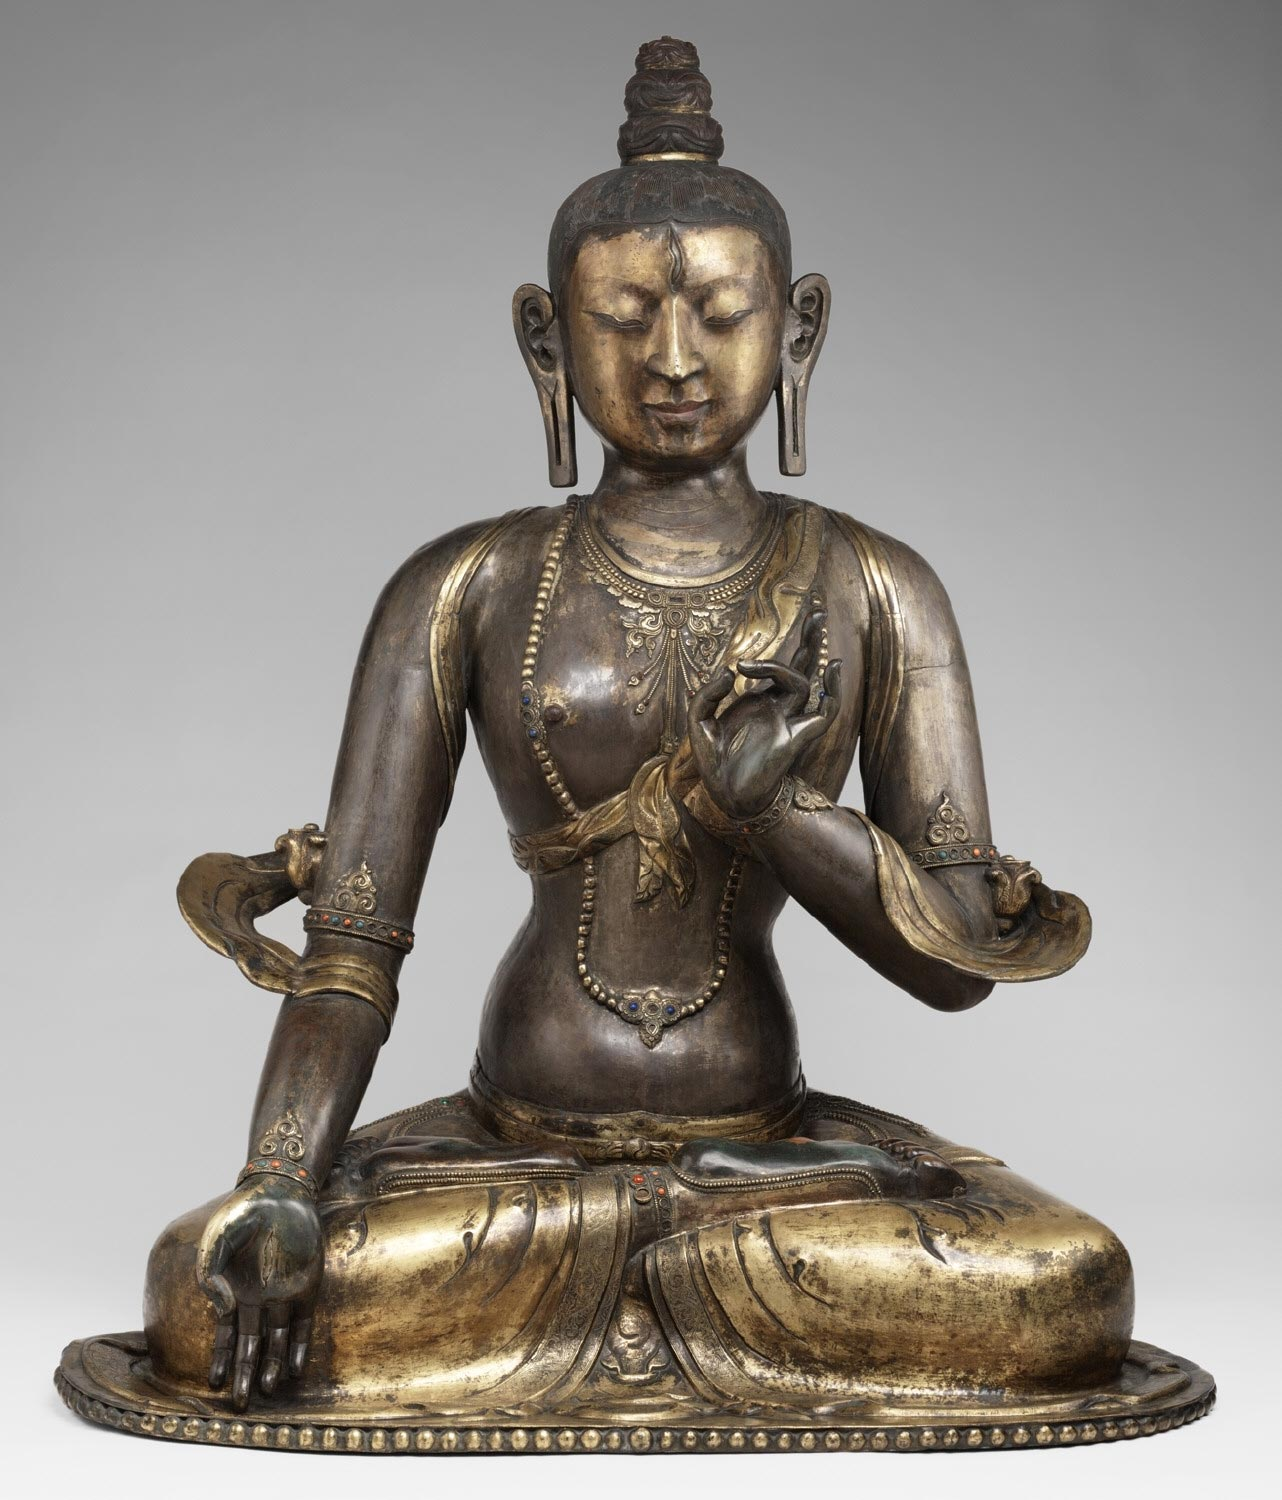 Tara, Goddess of Compassion